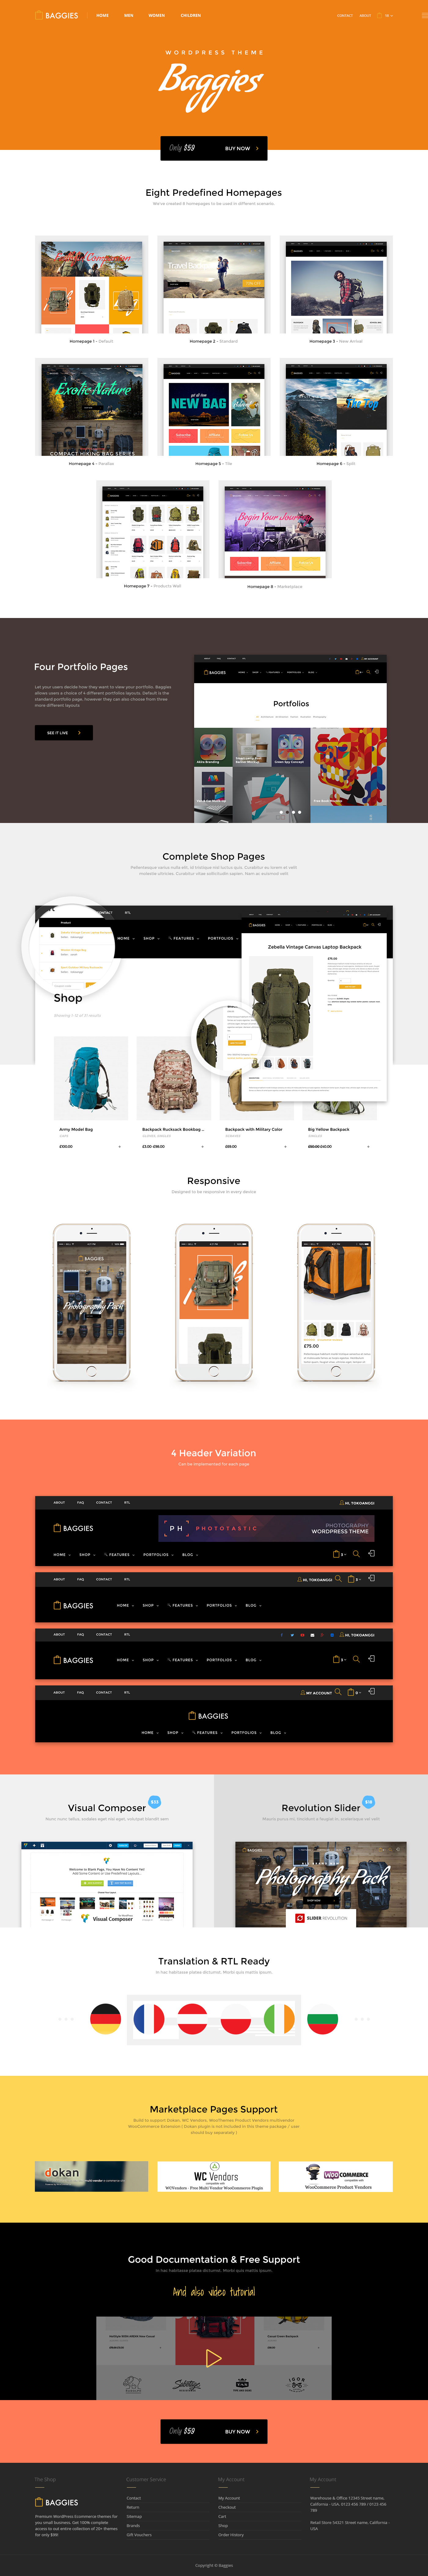 Baggies - WooCommerce Marketplace Themes - 5